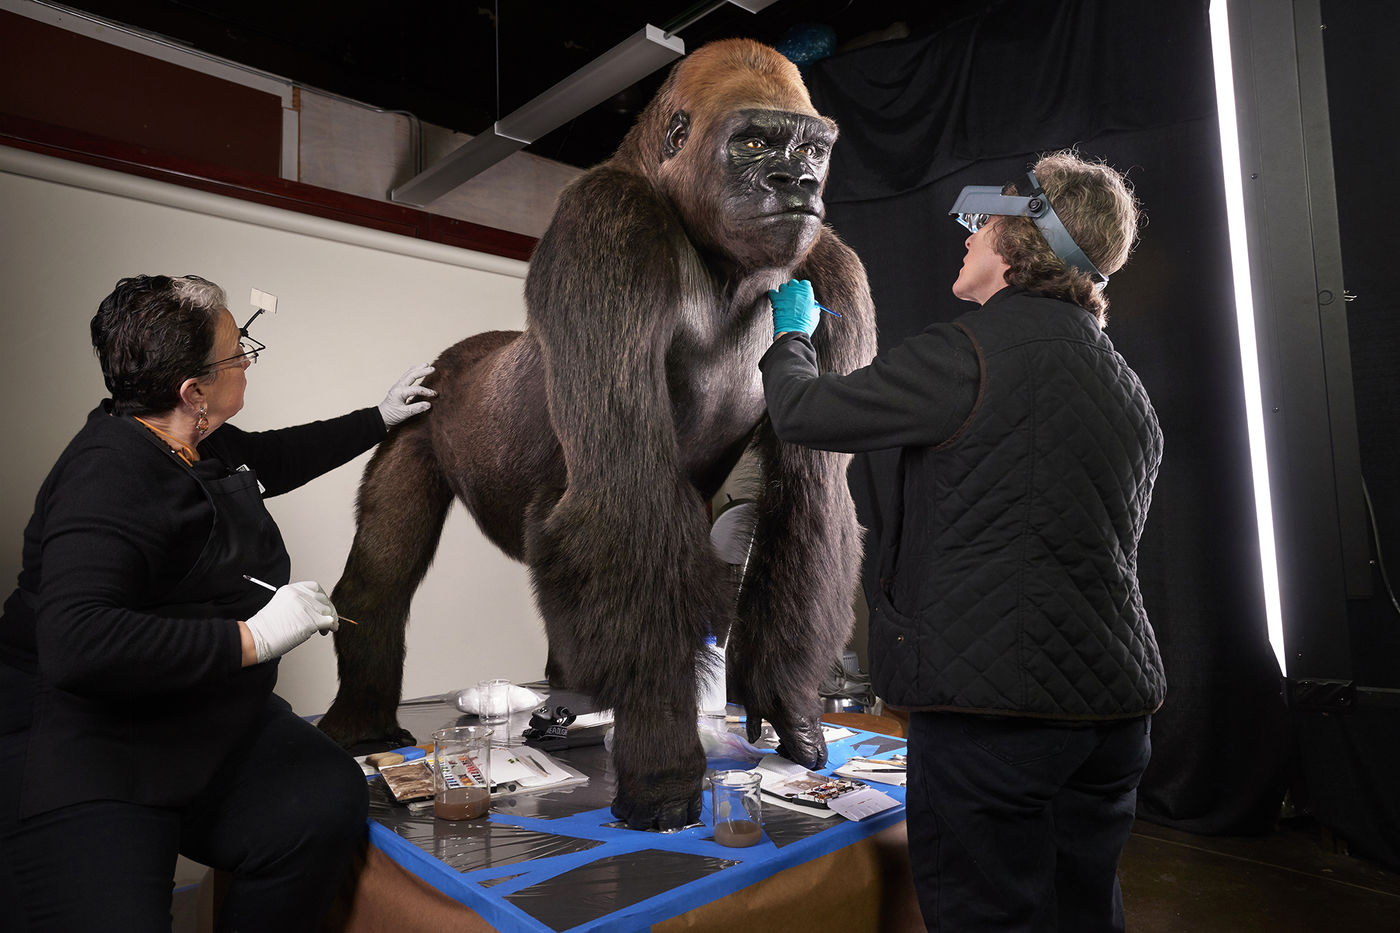 Two women, using magnifying glasses, gloves, and paintbrushes, closely examine and perform conservation treatment on a taxidermied gorilla specimen. The gorilla stands on a platform with a protective covering, and various conservation tools and materials are placed nearby.